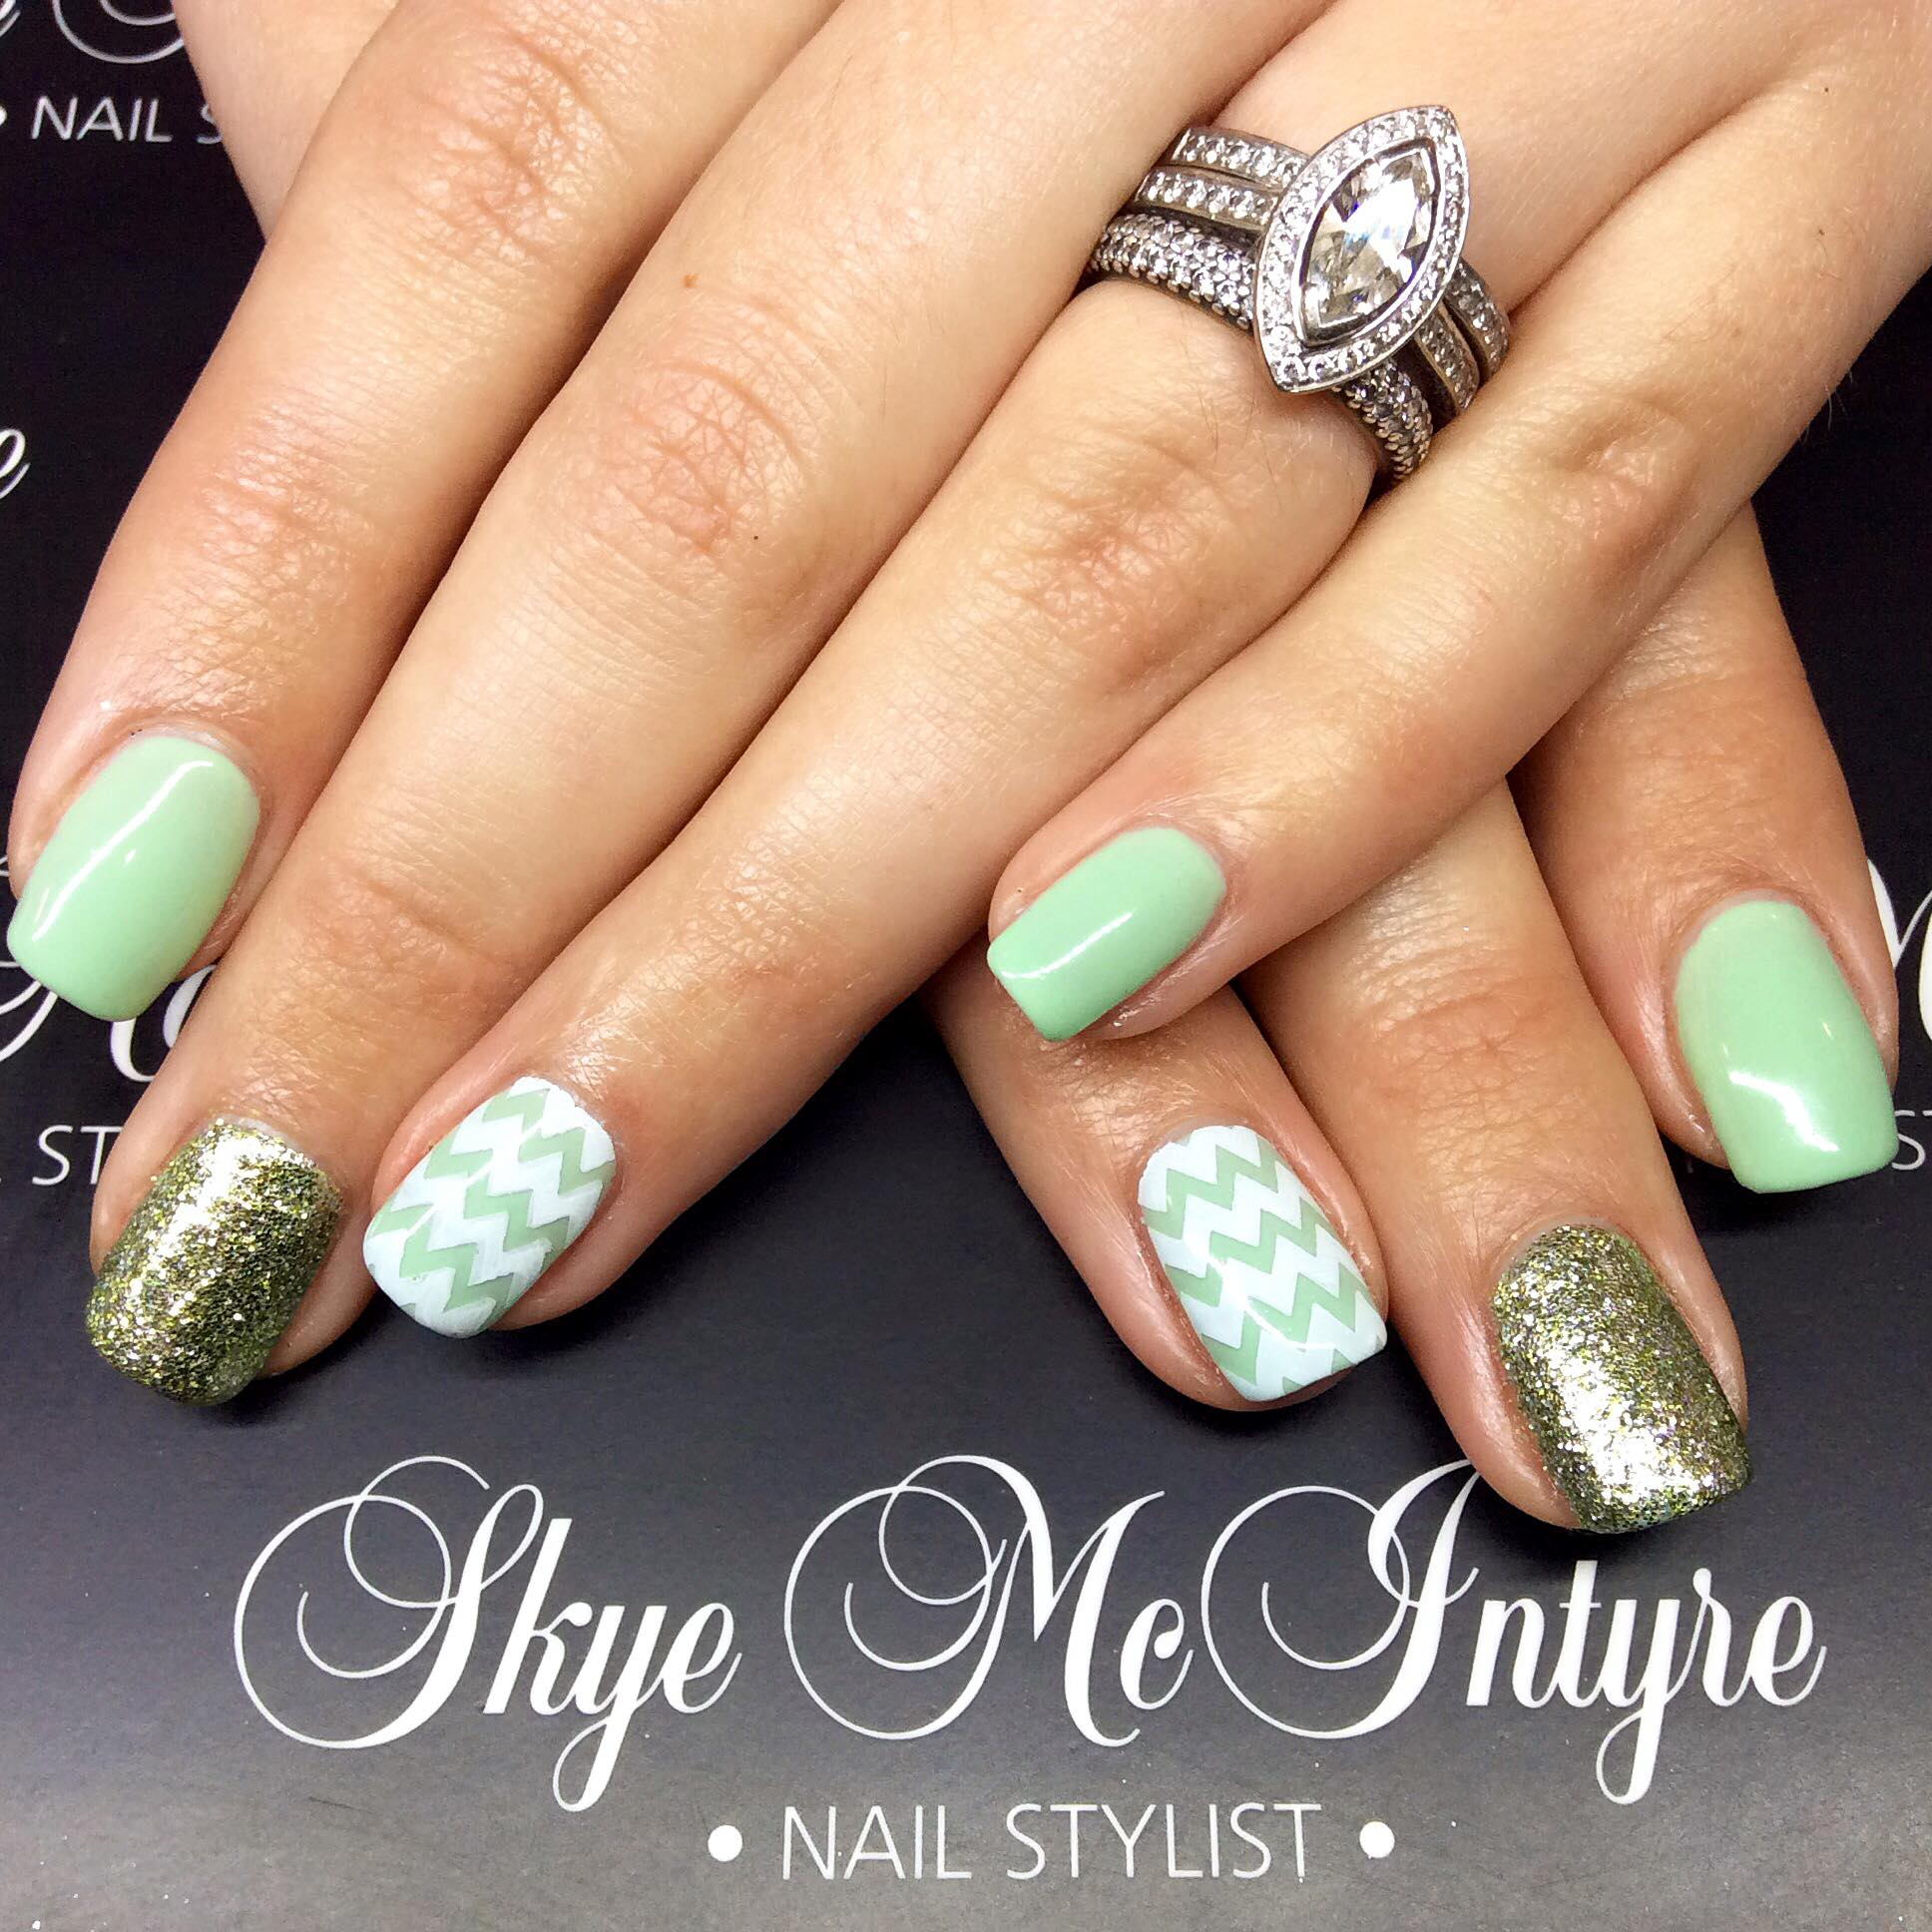 Nail styling and manicures as individual as you are. Located In Penrith, Sydney